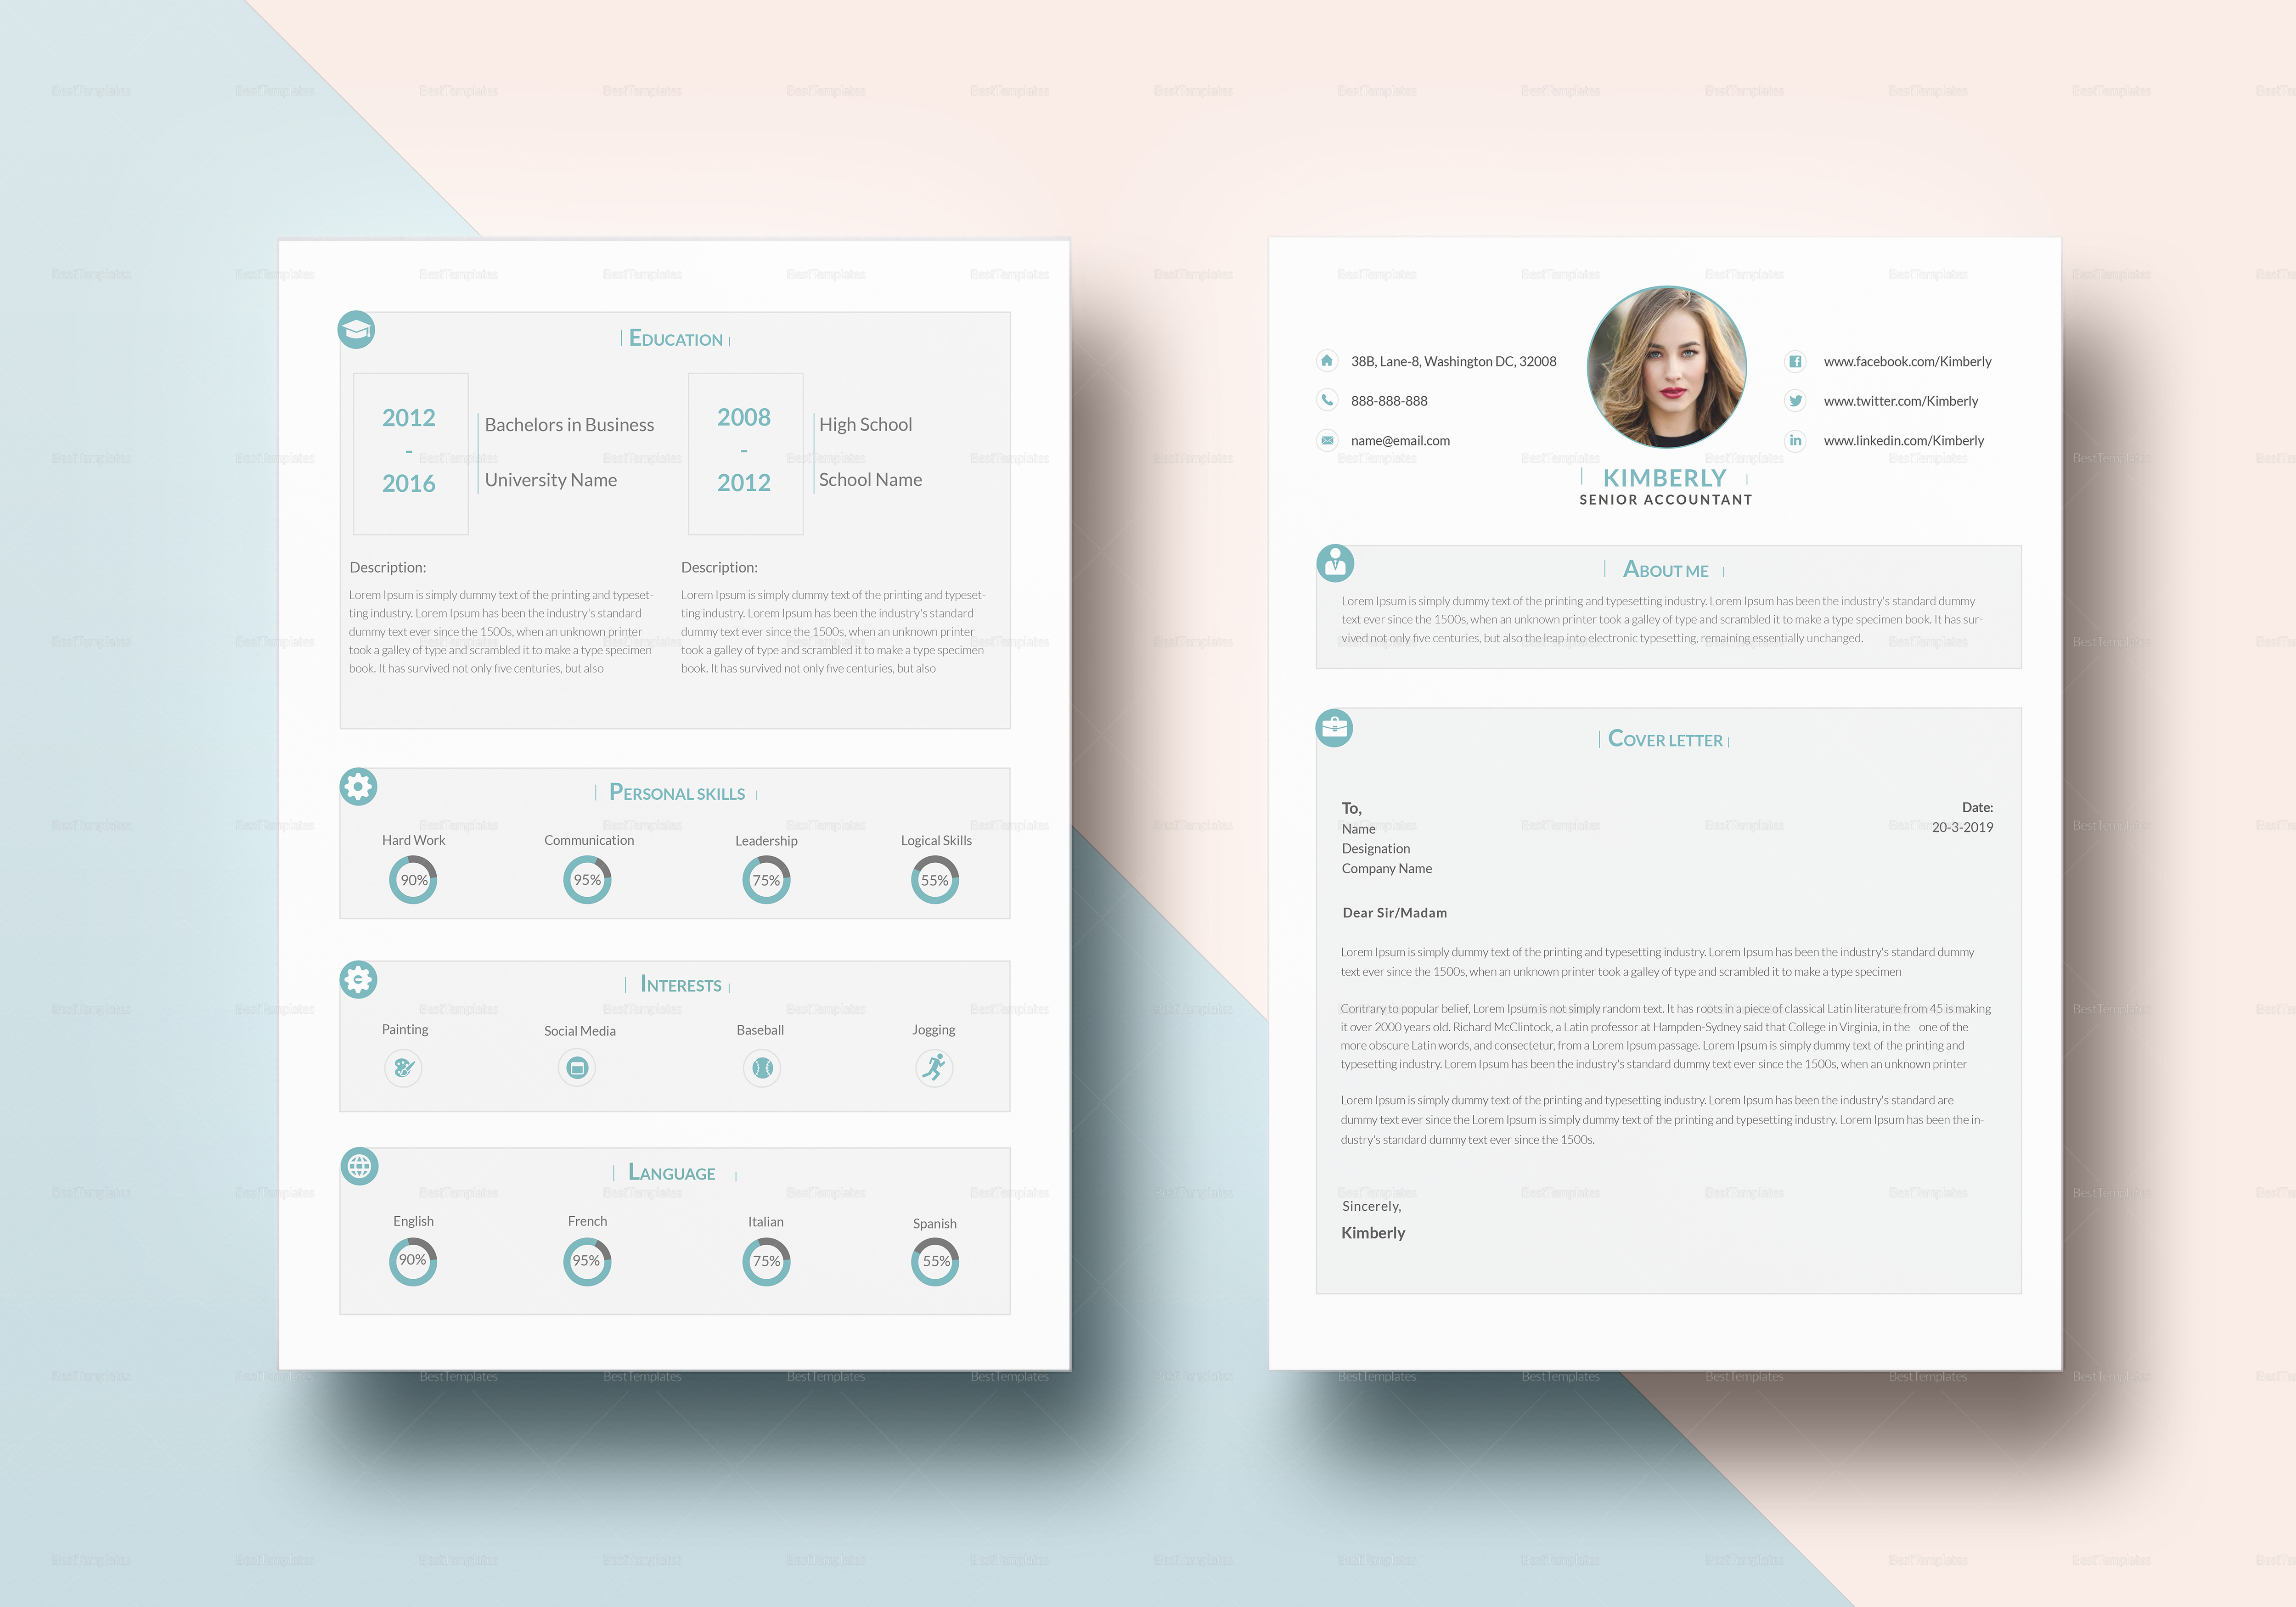 Mobile Product Manager Resume Experienced Senior Accountant Resume Design Template In